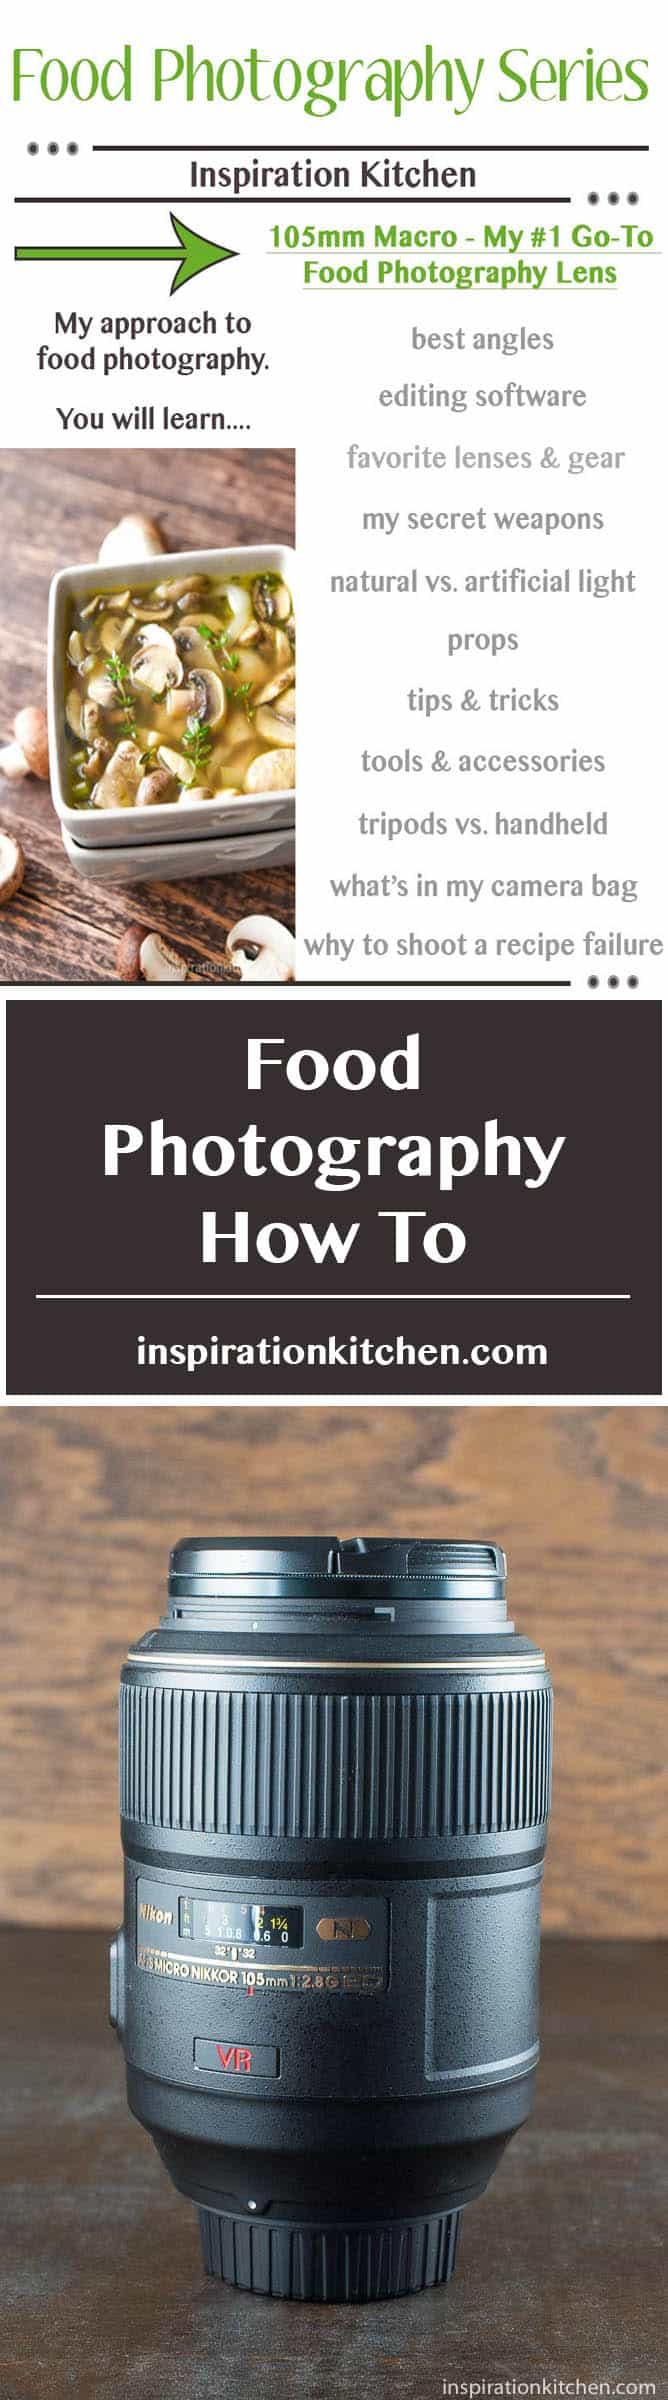 Food Photography How To - inspirationkitchen.com